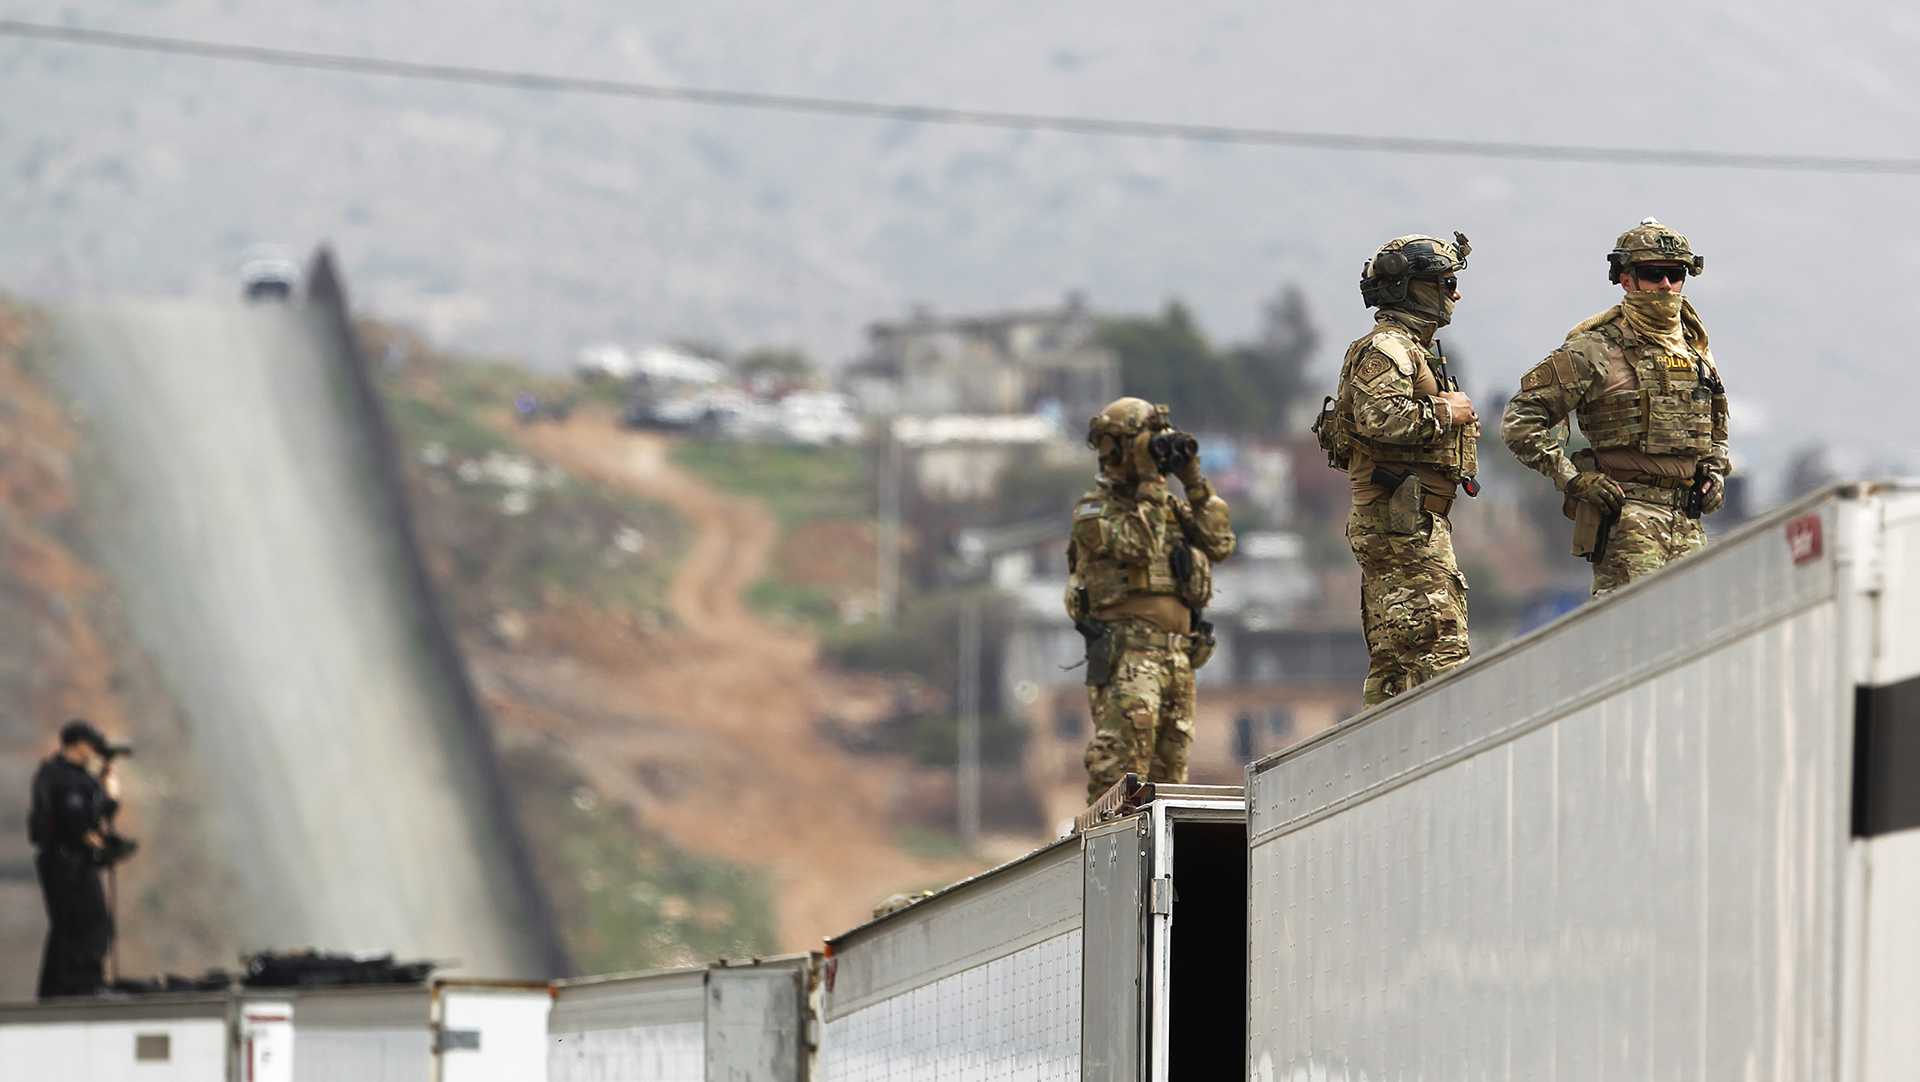 Military Police keep watch near the Mexico border as President Donald Trump takes a tour of the border wall prototypes near the Otay Mesa Port of Entry in San Diego County, Calif., on March 13, 2018. (K.C. Alfred/San Diego Union-Tribune/TNS)